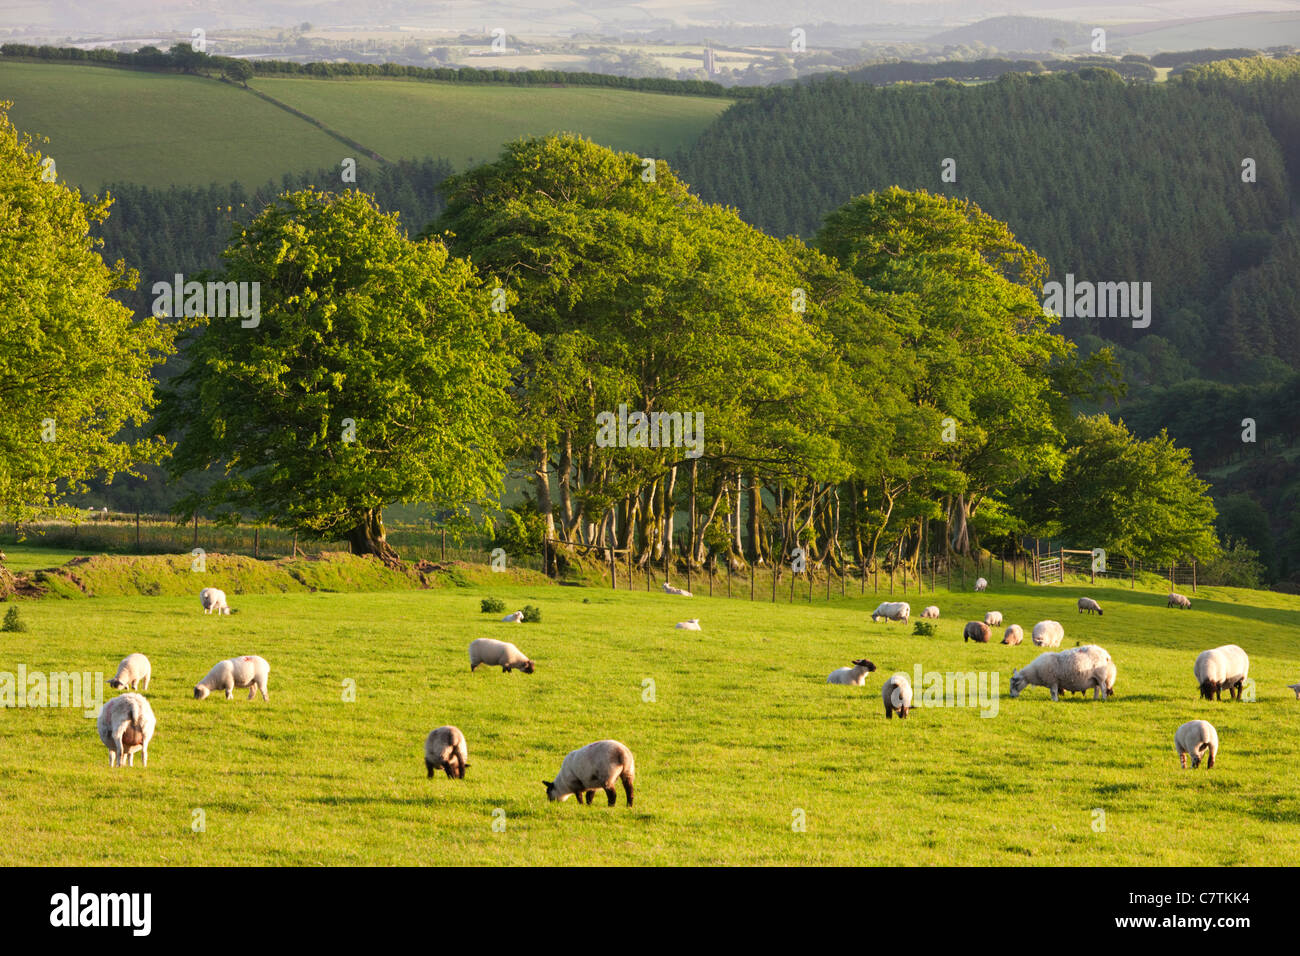 Sheep grazing on farmland in Exmoor, Somerset - Stock Image